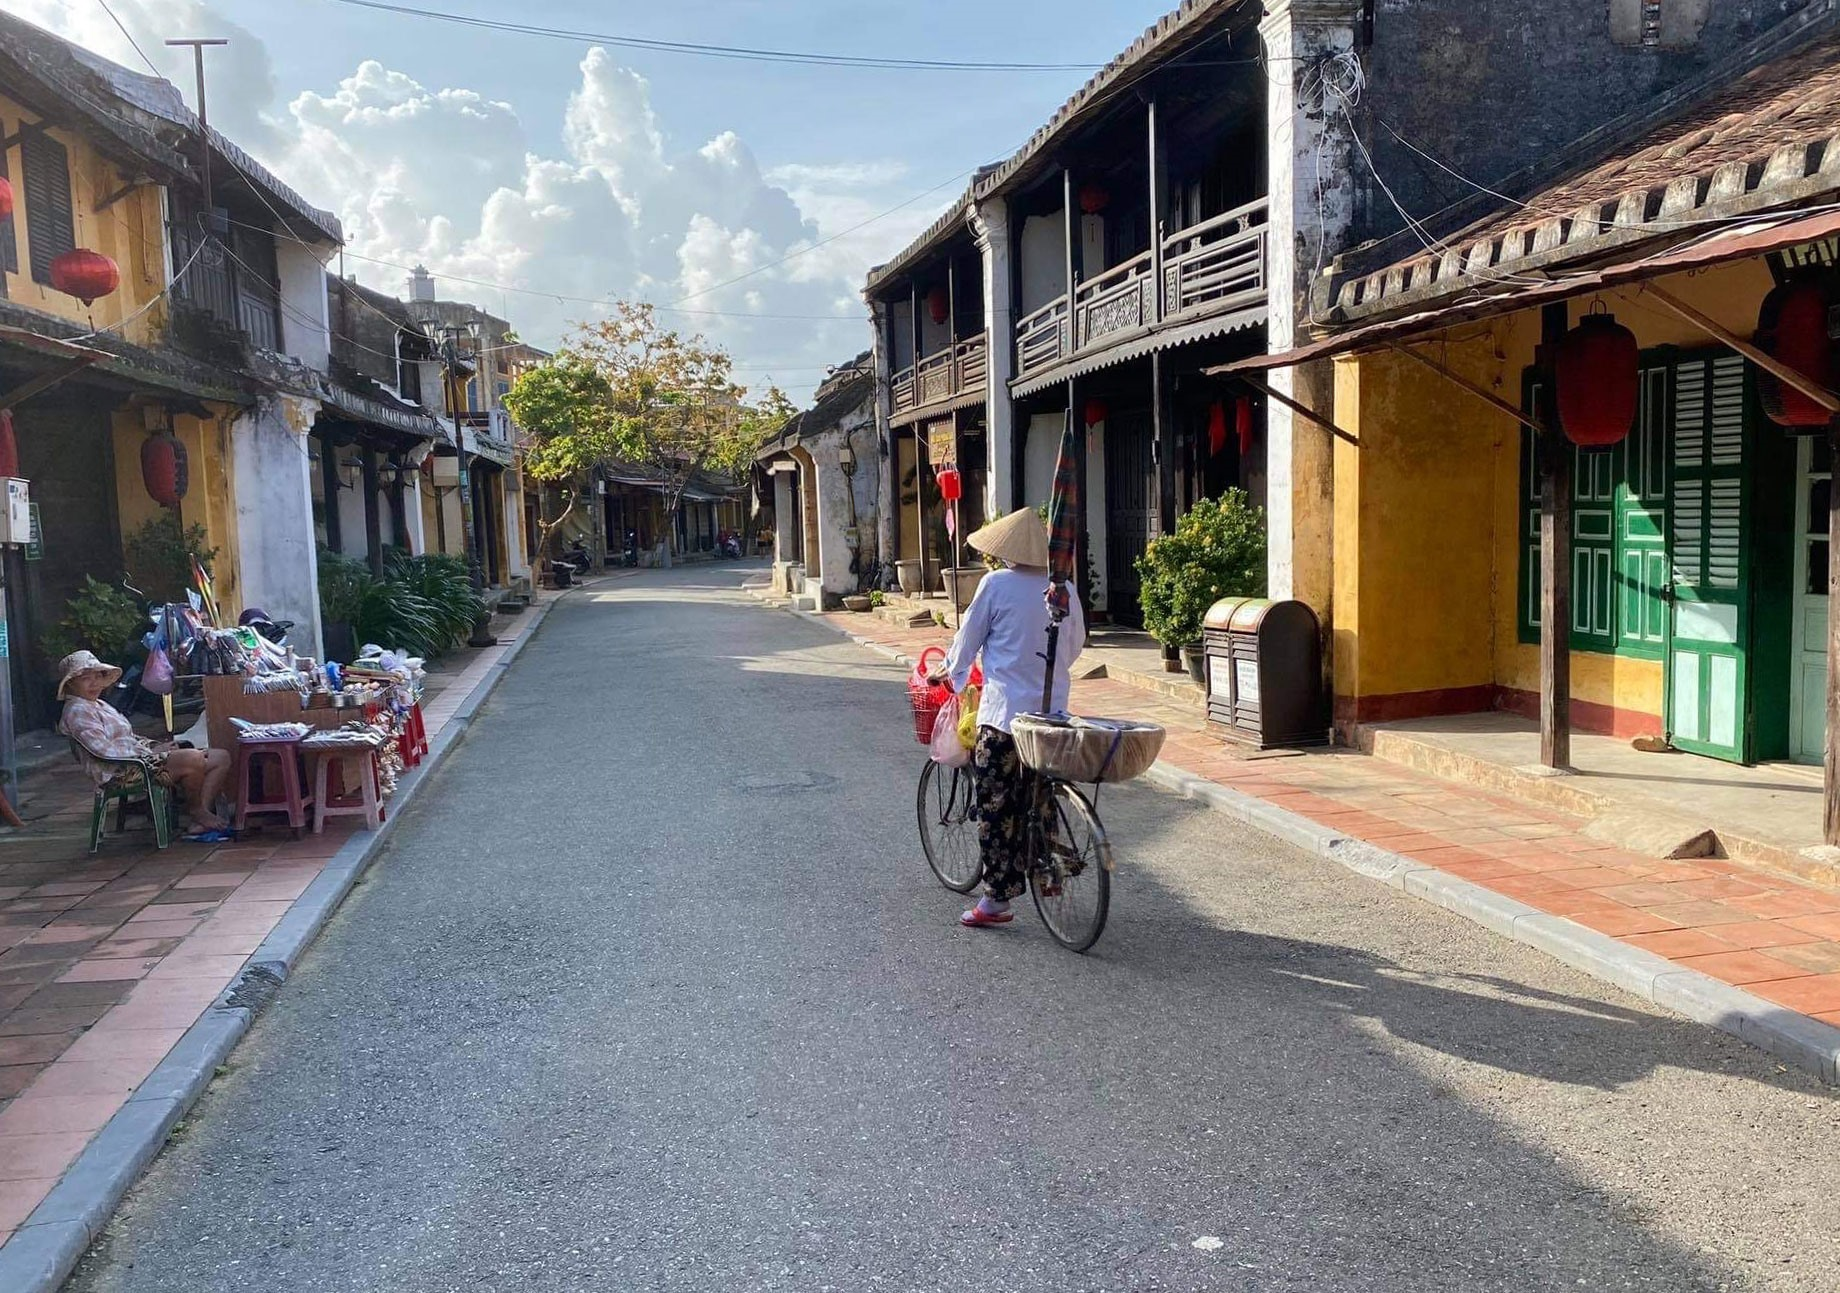 Hoi An used to be very popular with foreigners and domestic visitors. However, since the 2nd Covid-19 outbreak and severe impacts of natural disasters, Hoi An has received fewer visitors.